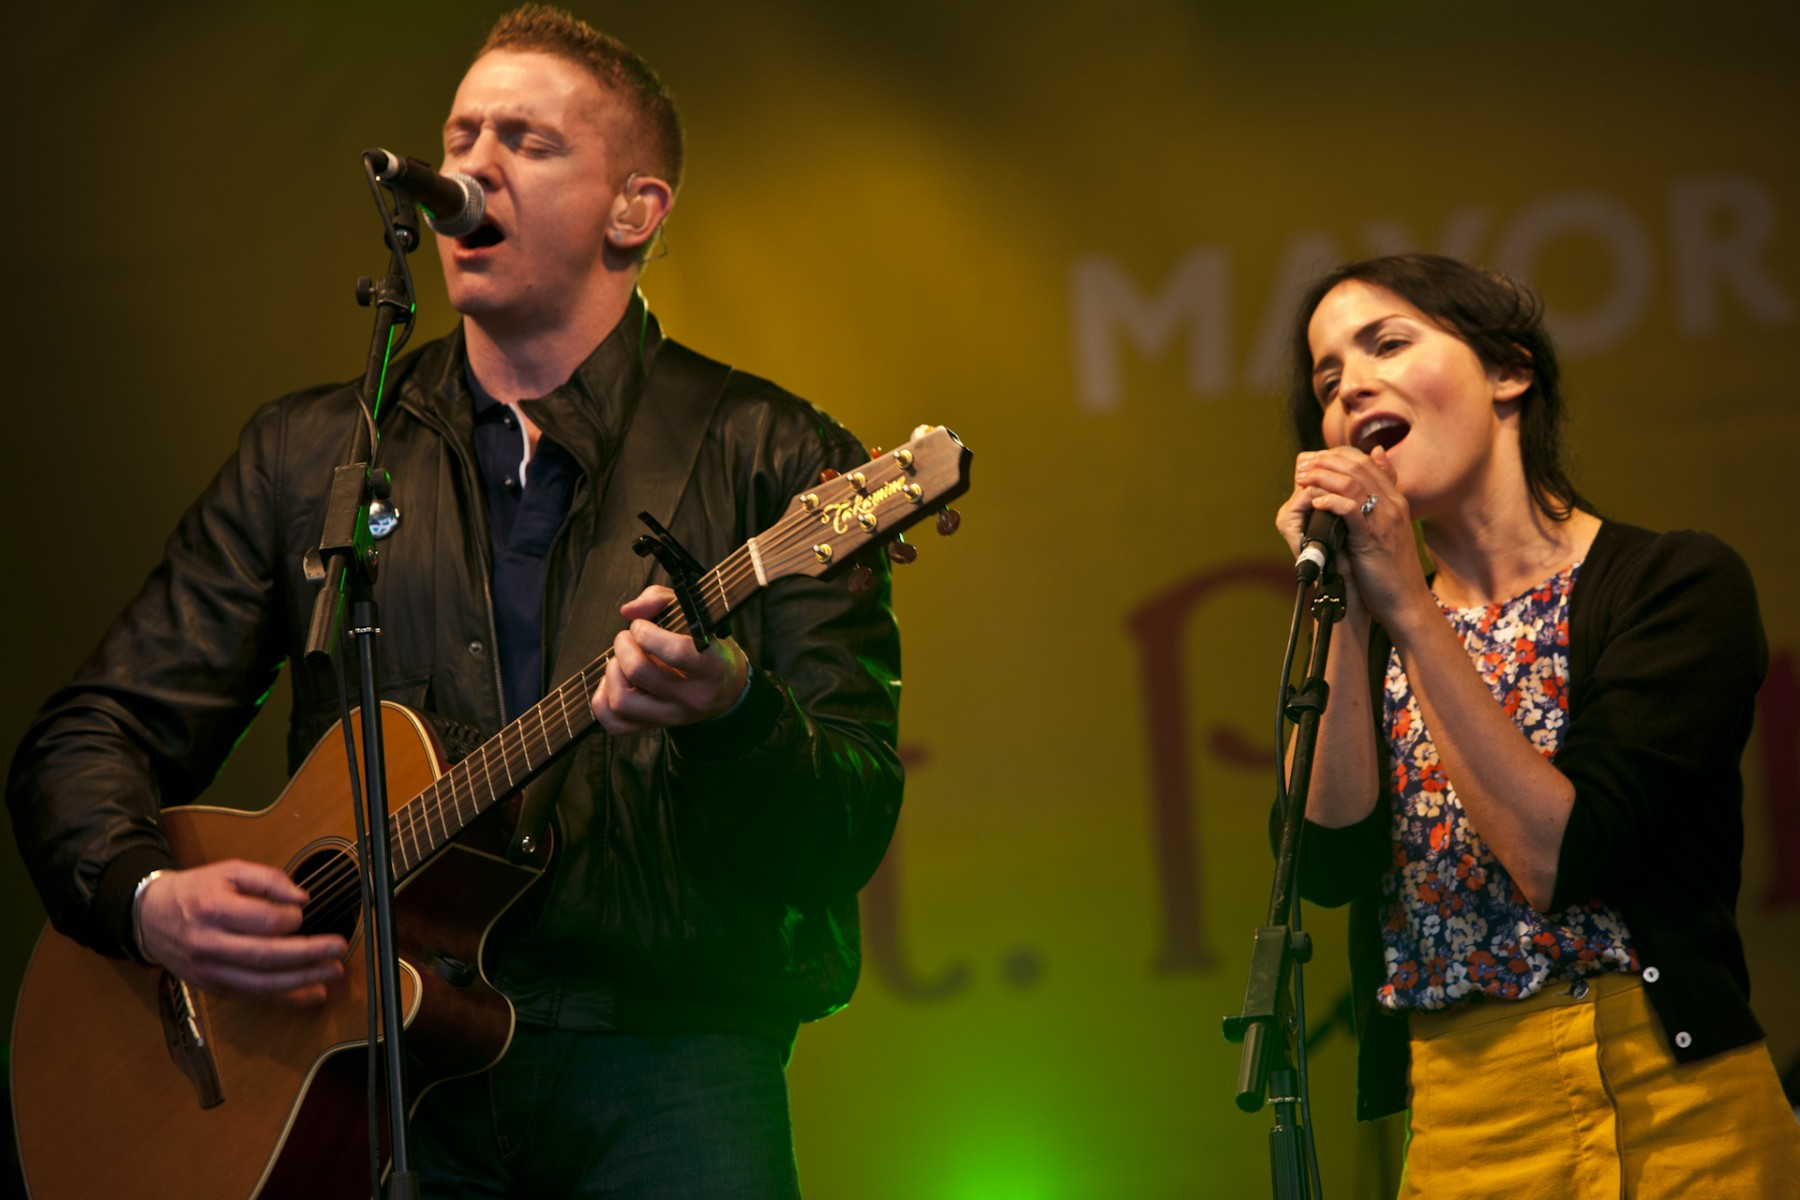 Damien Dempsey and Andrea Corr sing a duet: Trafalgar Square, London